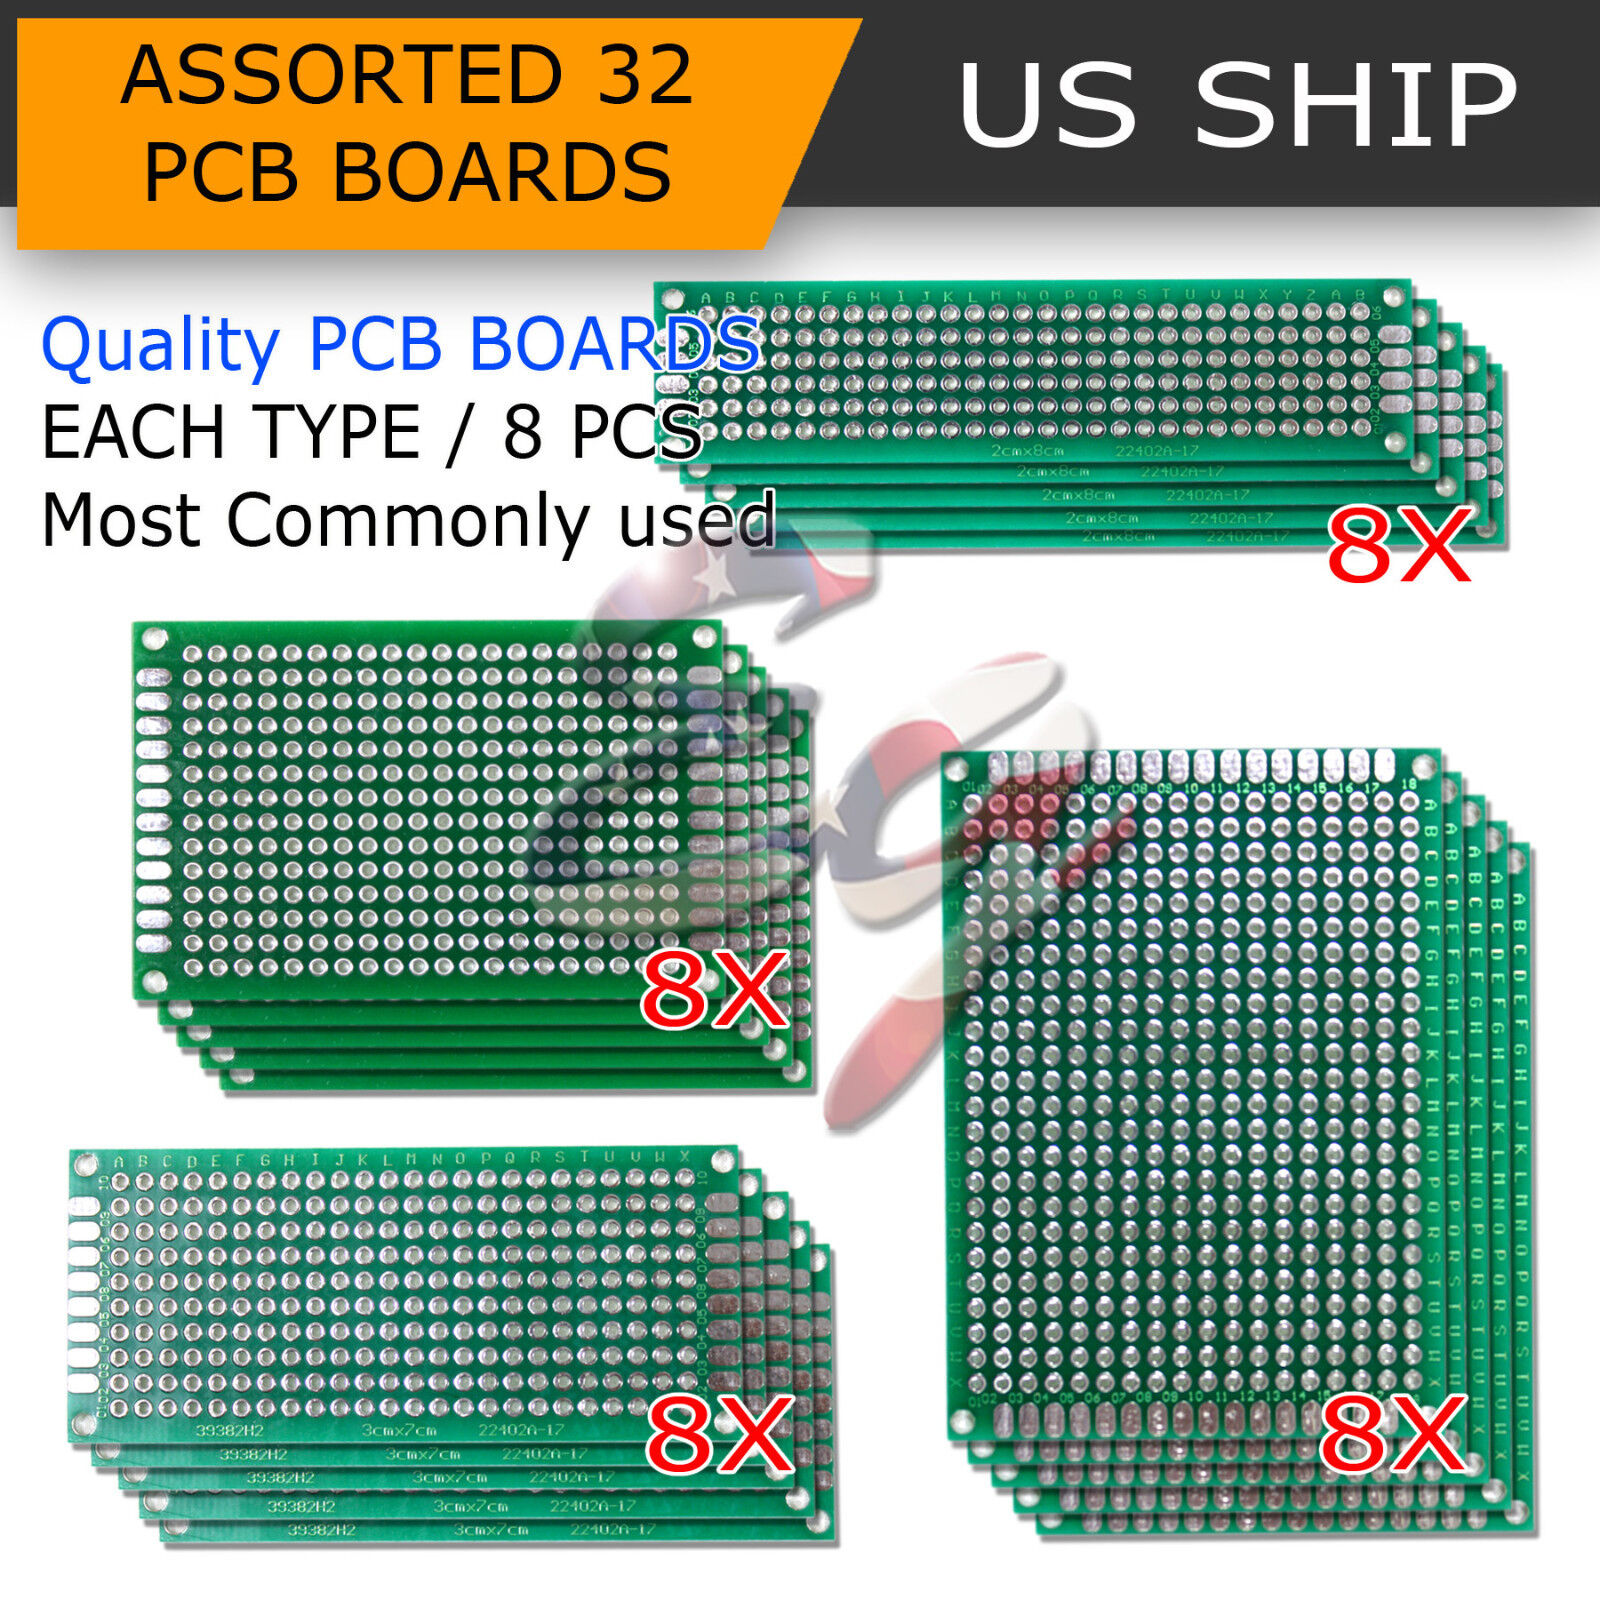 20 PCS Double Sided PCB Proto Perf Board Through Plated 2X8 3X7 4X6 5X7 Cm Sets